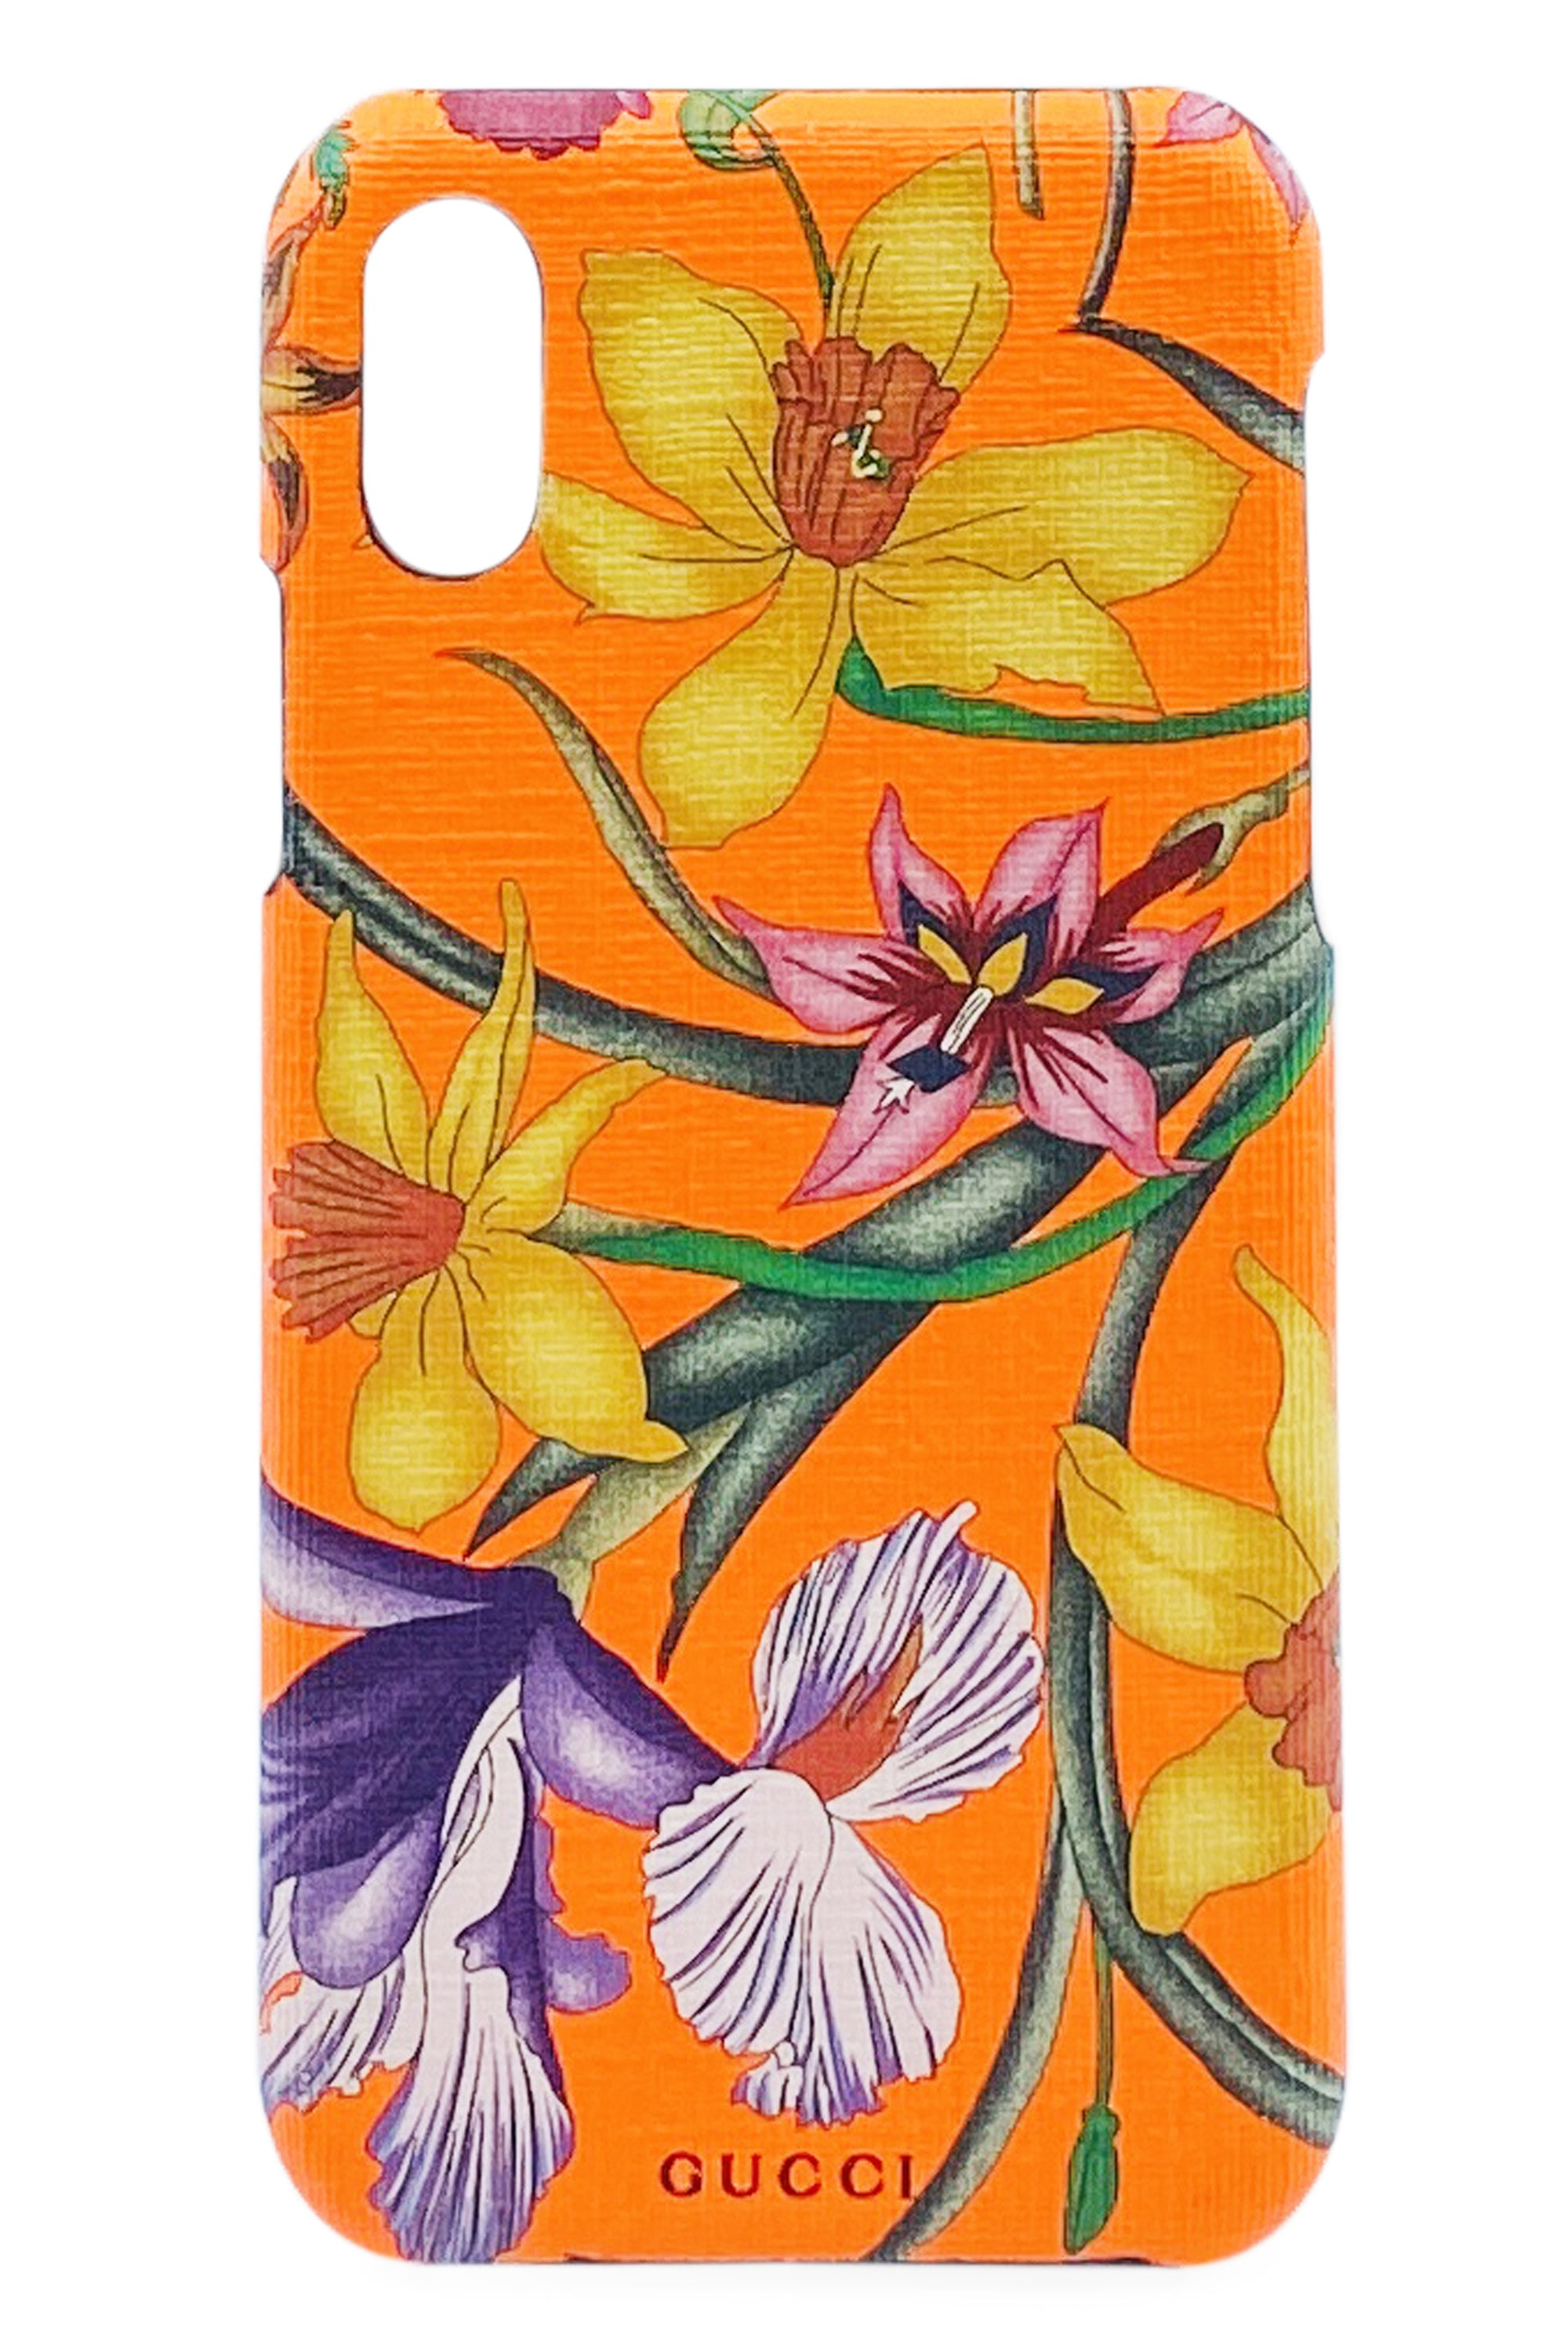 GUCCI iPhone Case X/XS Neon Orange mit Blütenprint Frontansicht